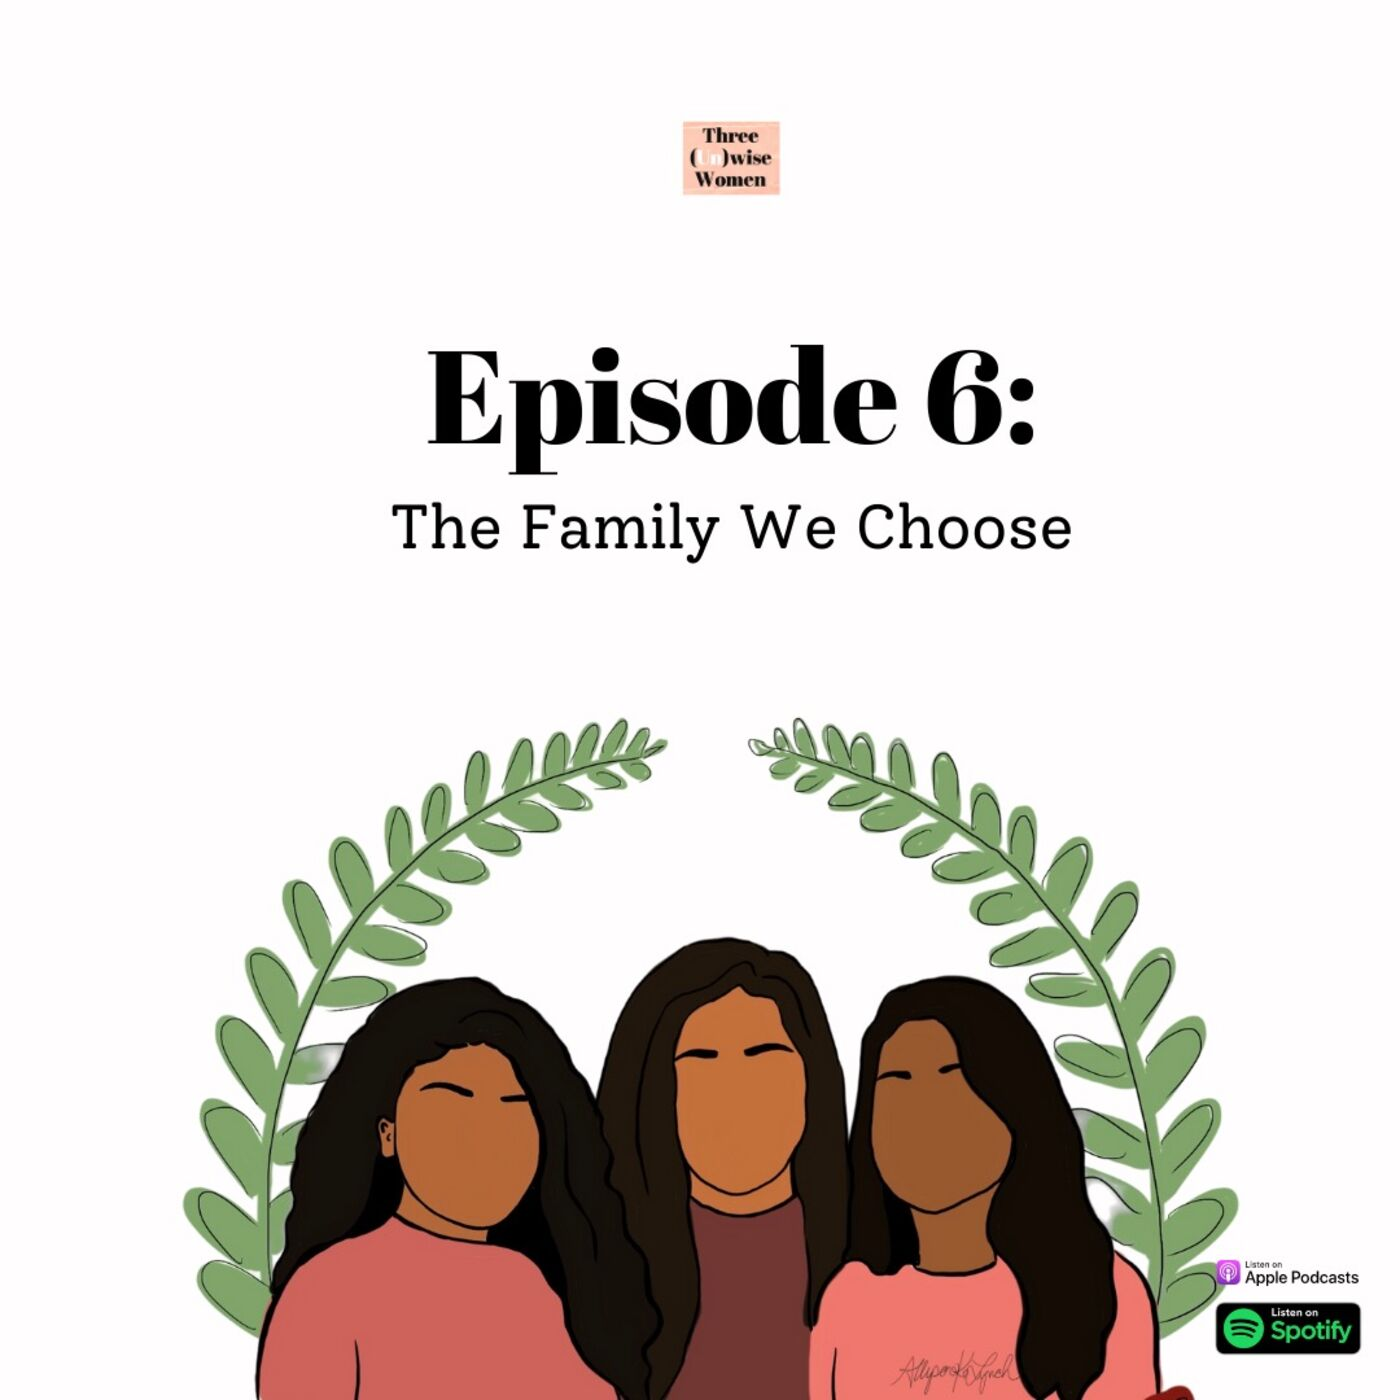 The Family We Choose